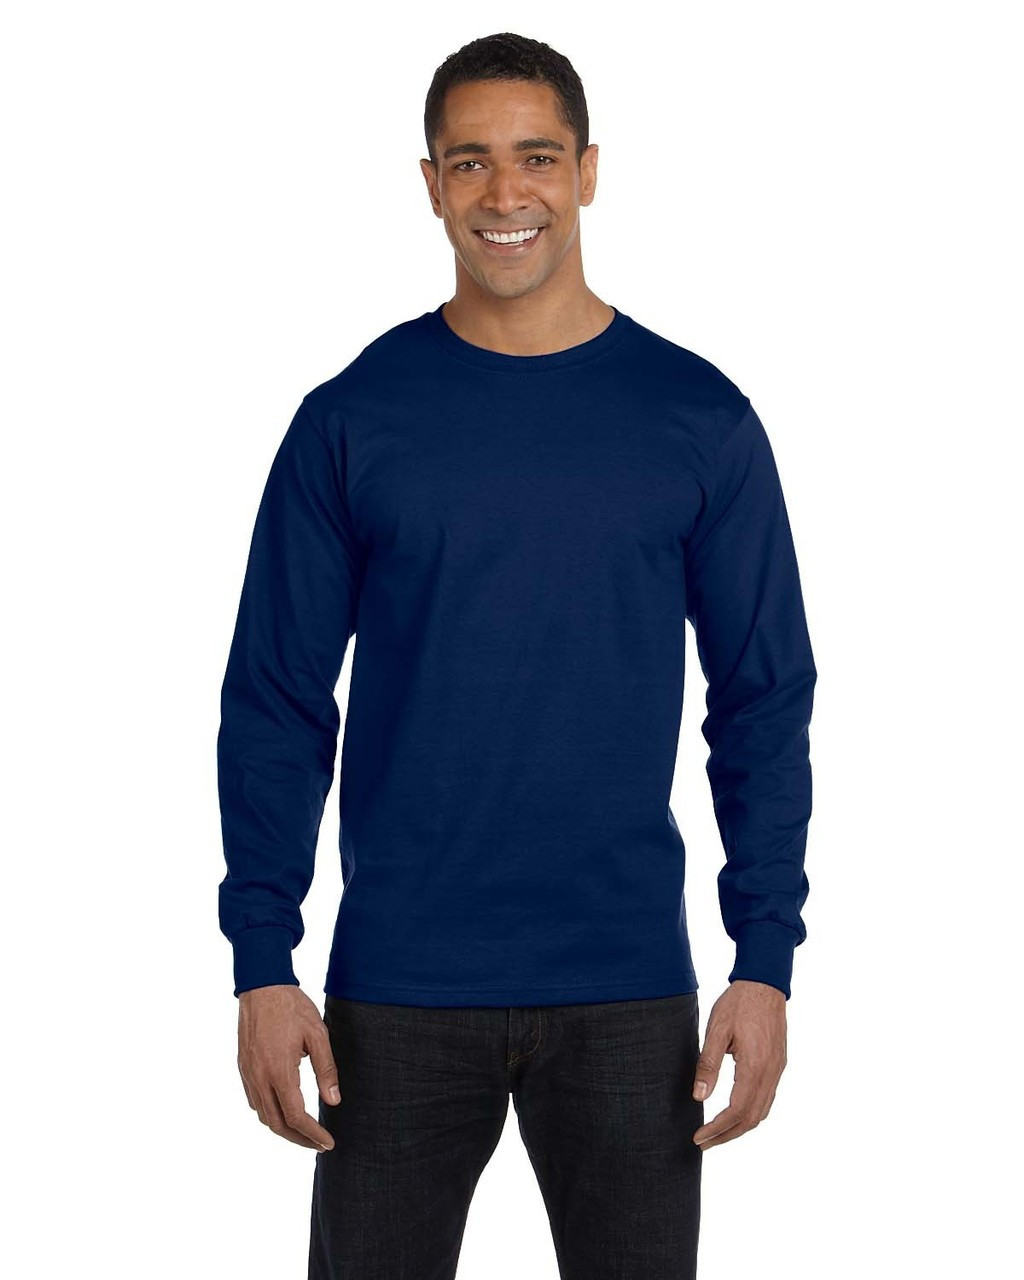 Navy - G840 Gildan DryBlend 50/50 Long Sleeve T-Shirt | Blankclothing.ca